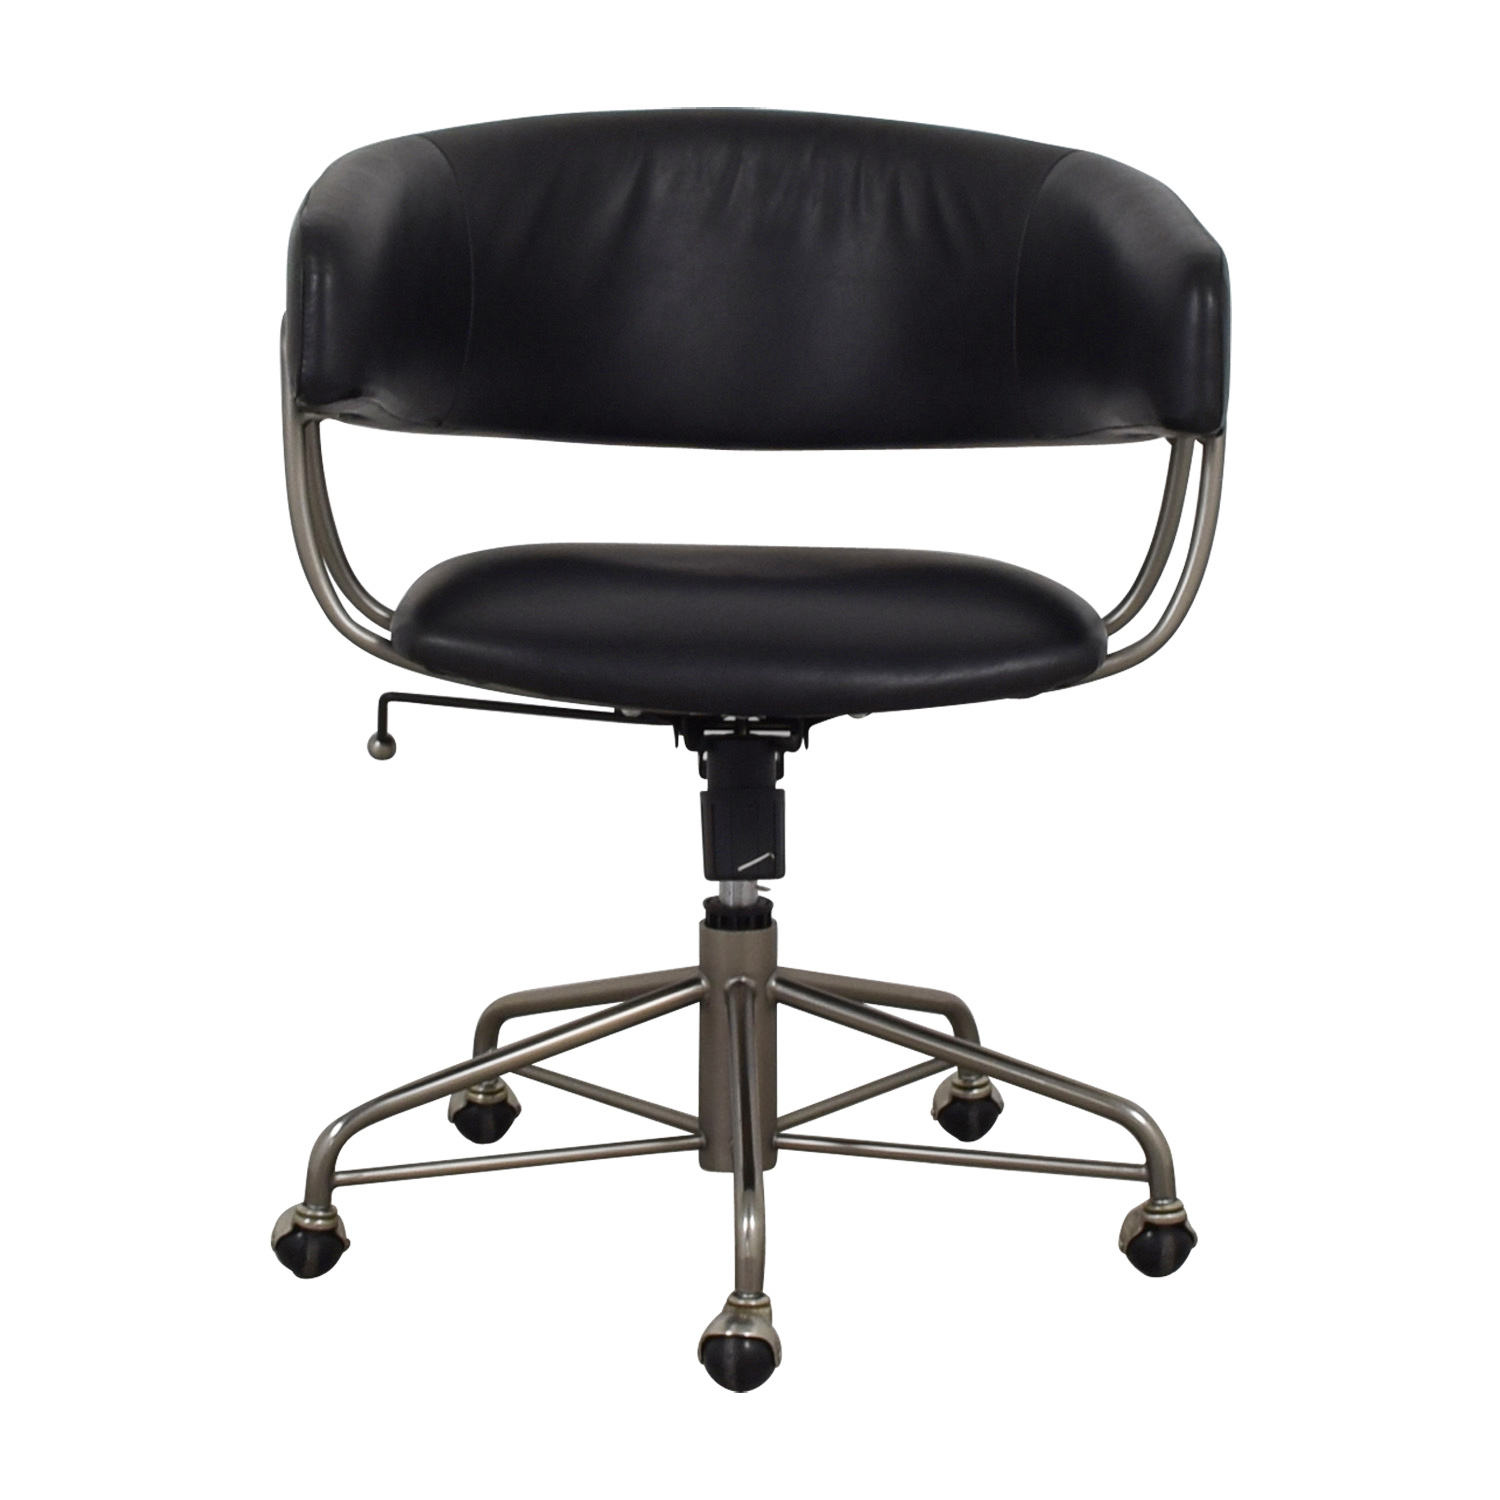 73% OFF   West Elm West Elm Halifax Black Leather Office Chair / Chairs